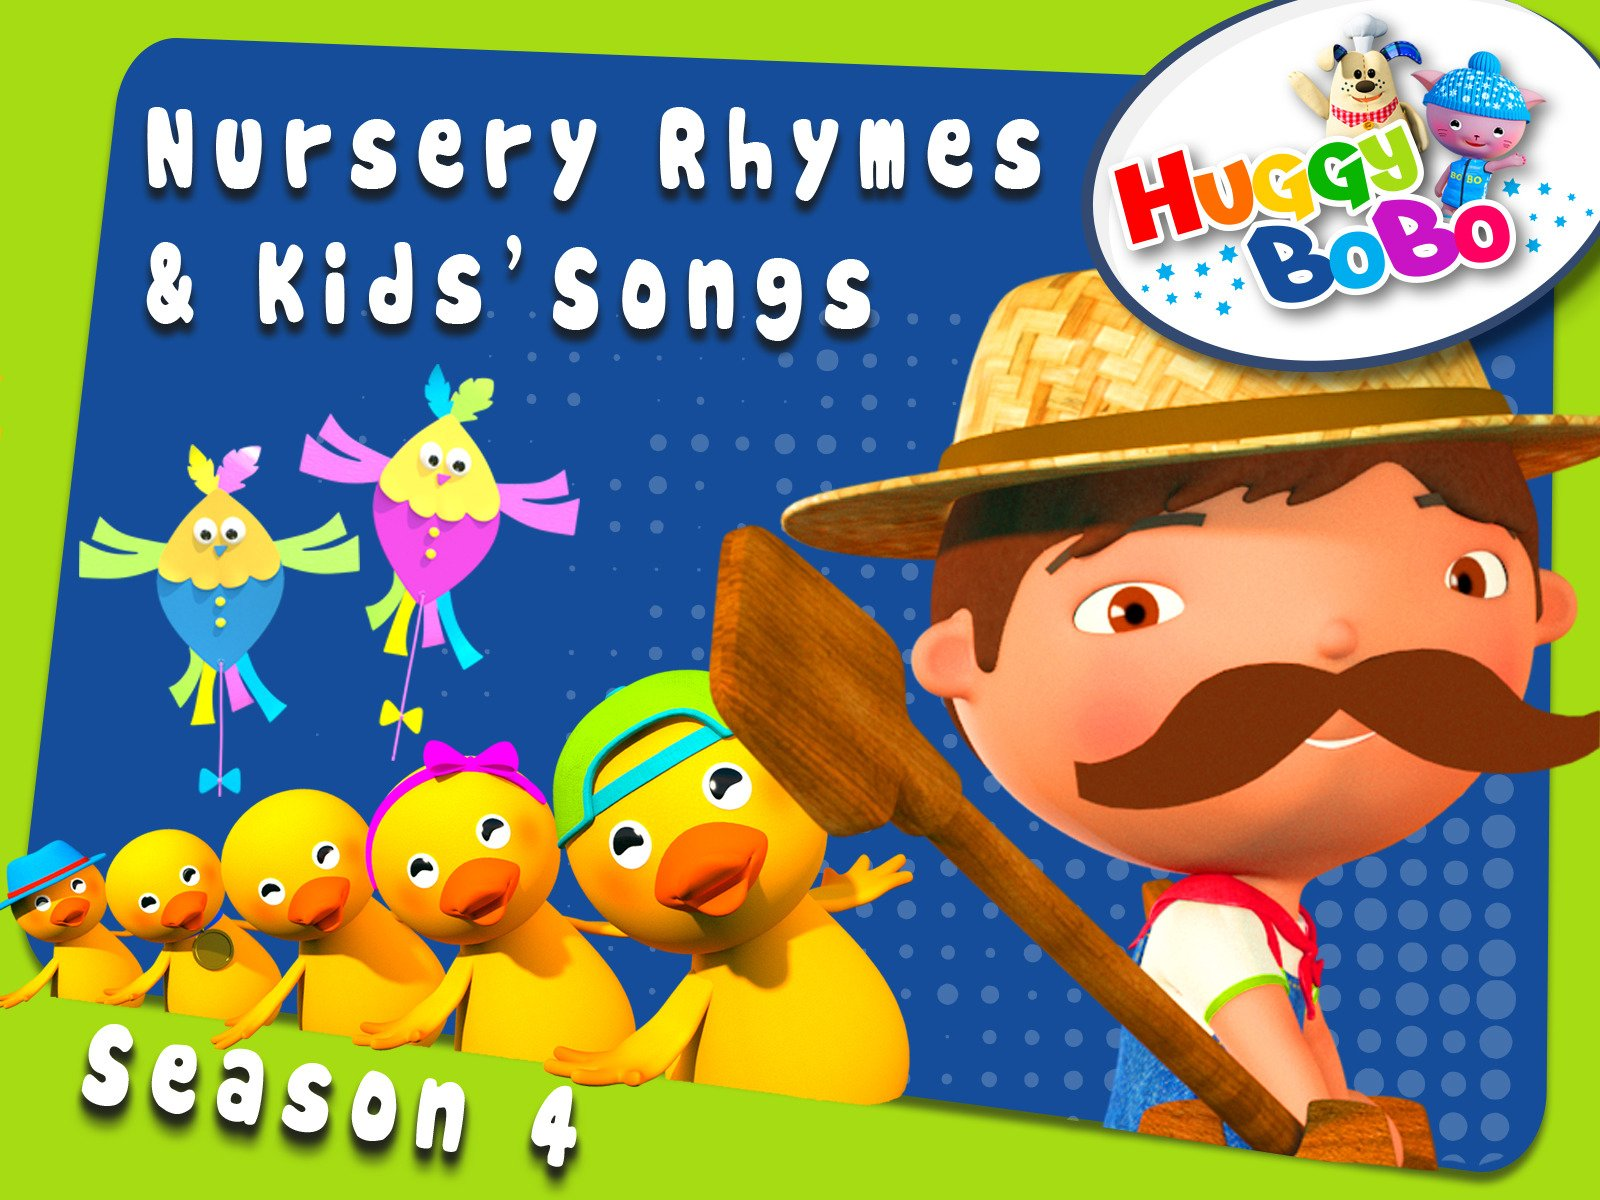 Nursery Rhymes And Kids' Songs By HuggyBoBo on Amazon Prime Video UK